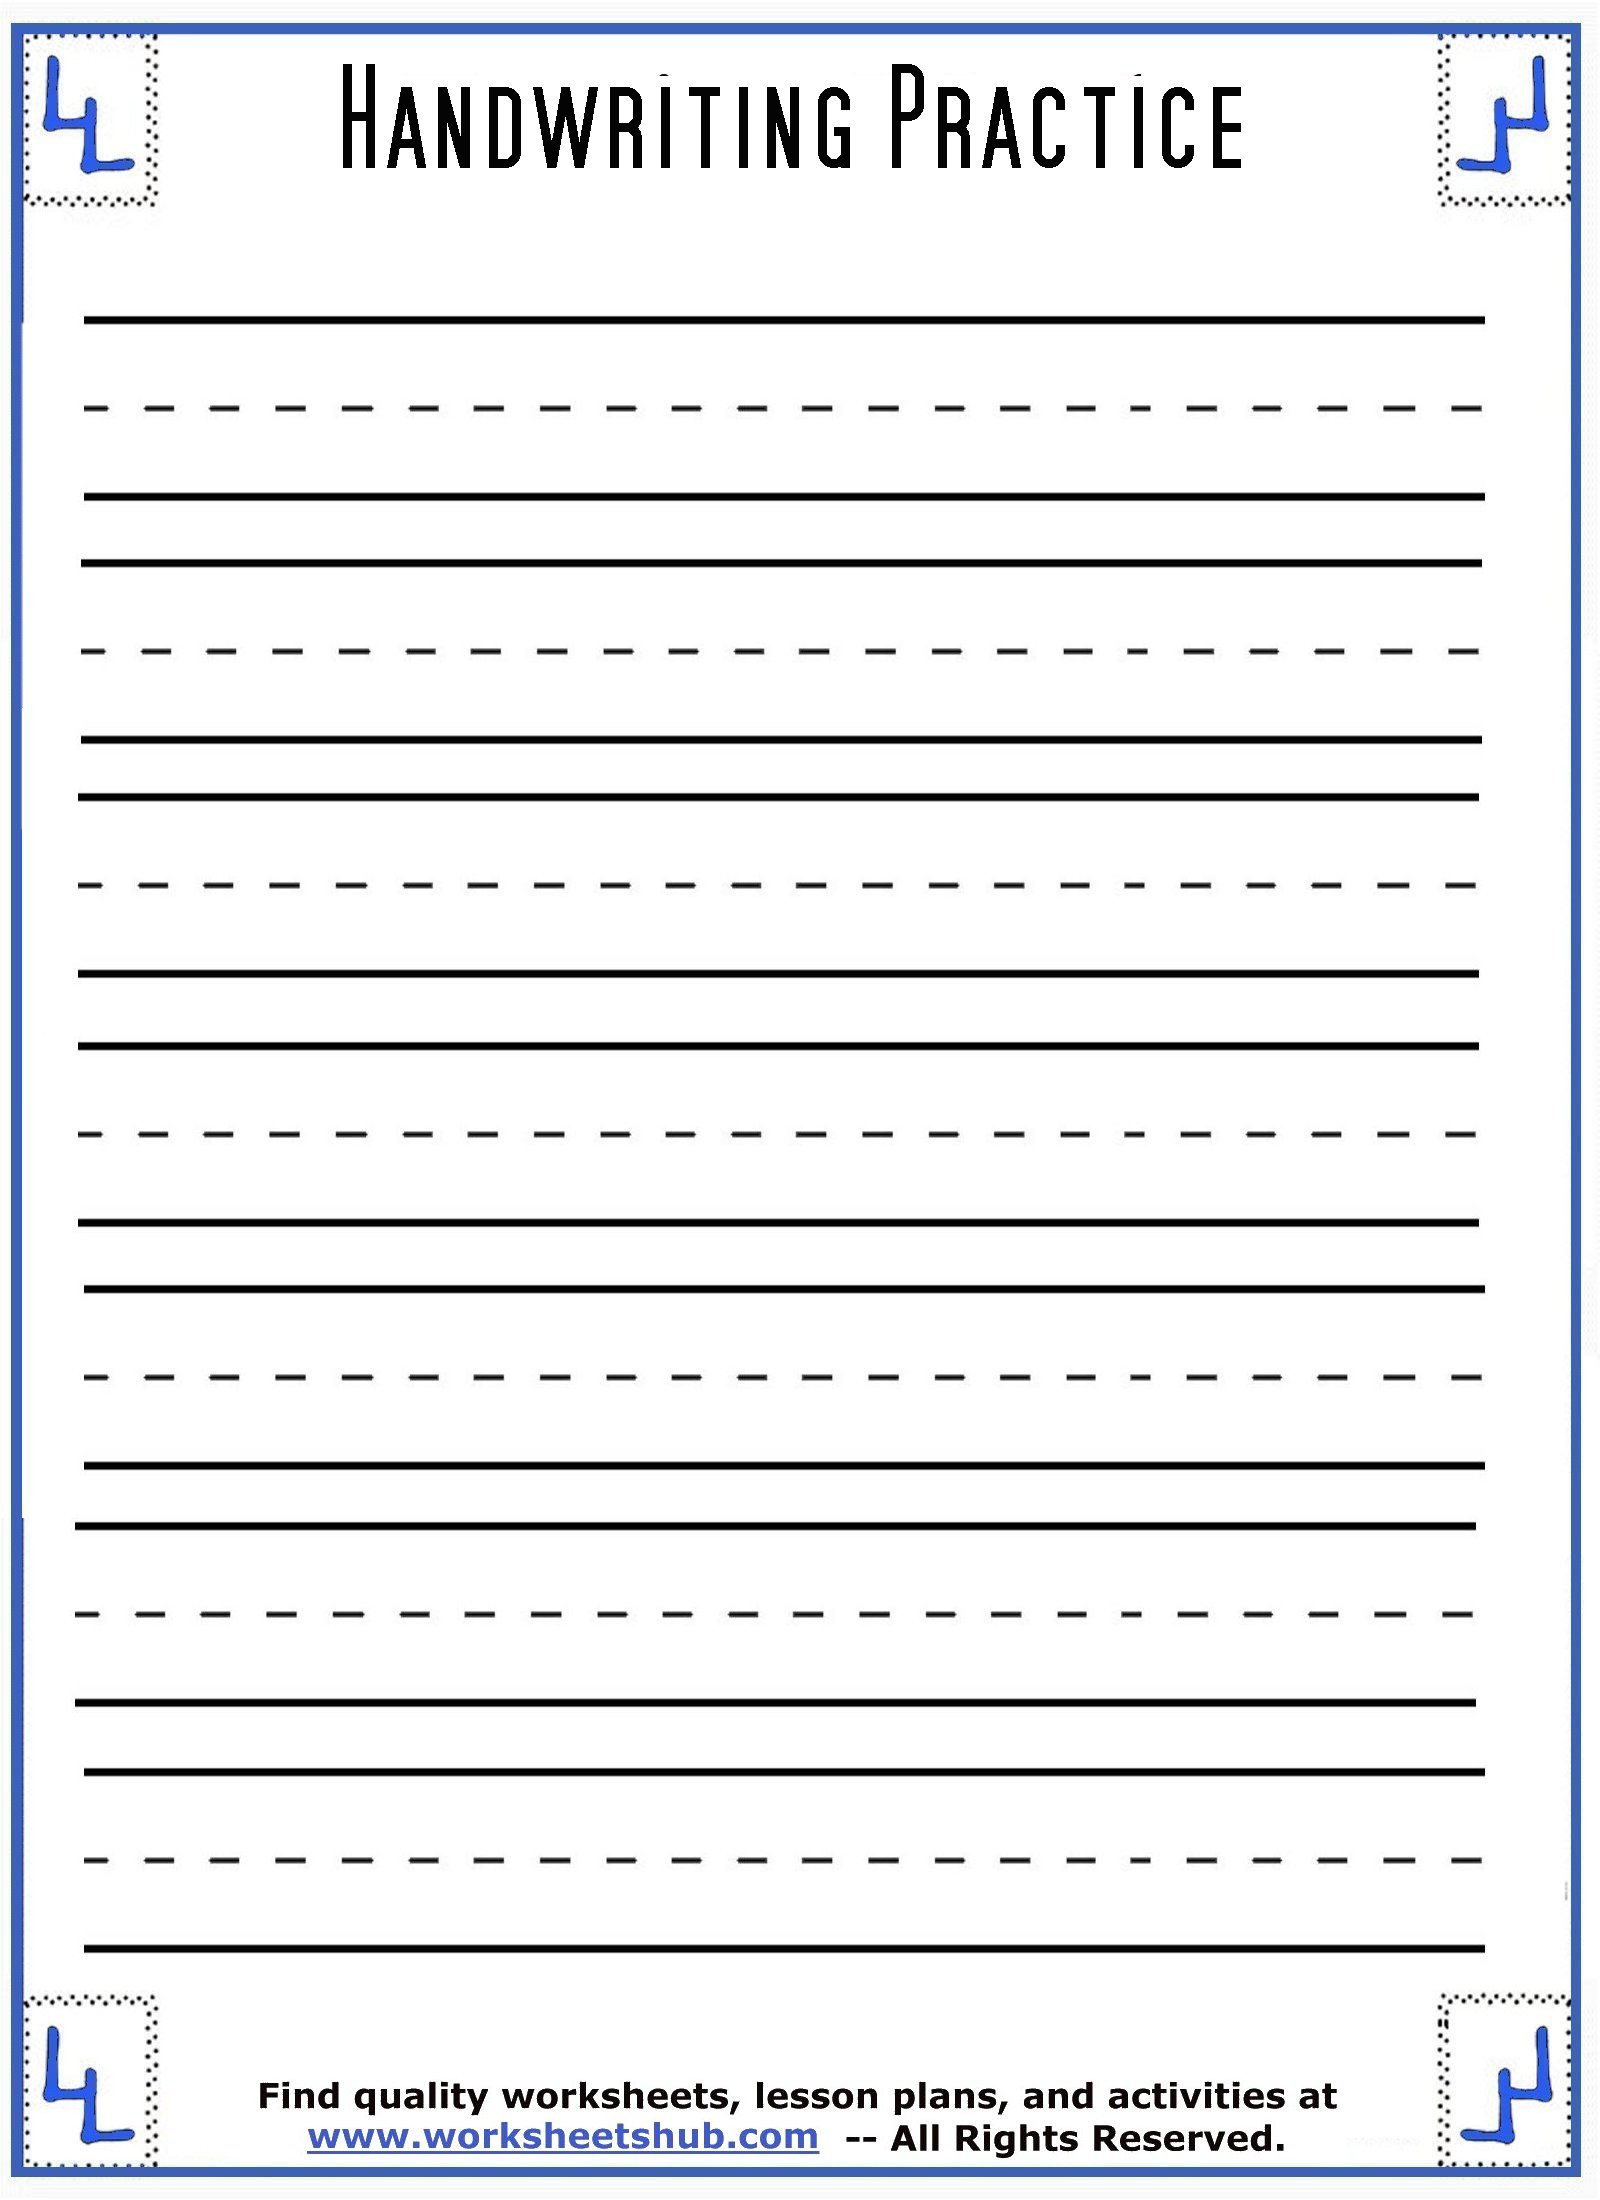 handwriting sheets 1